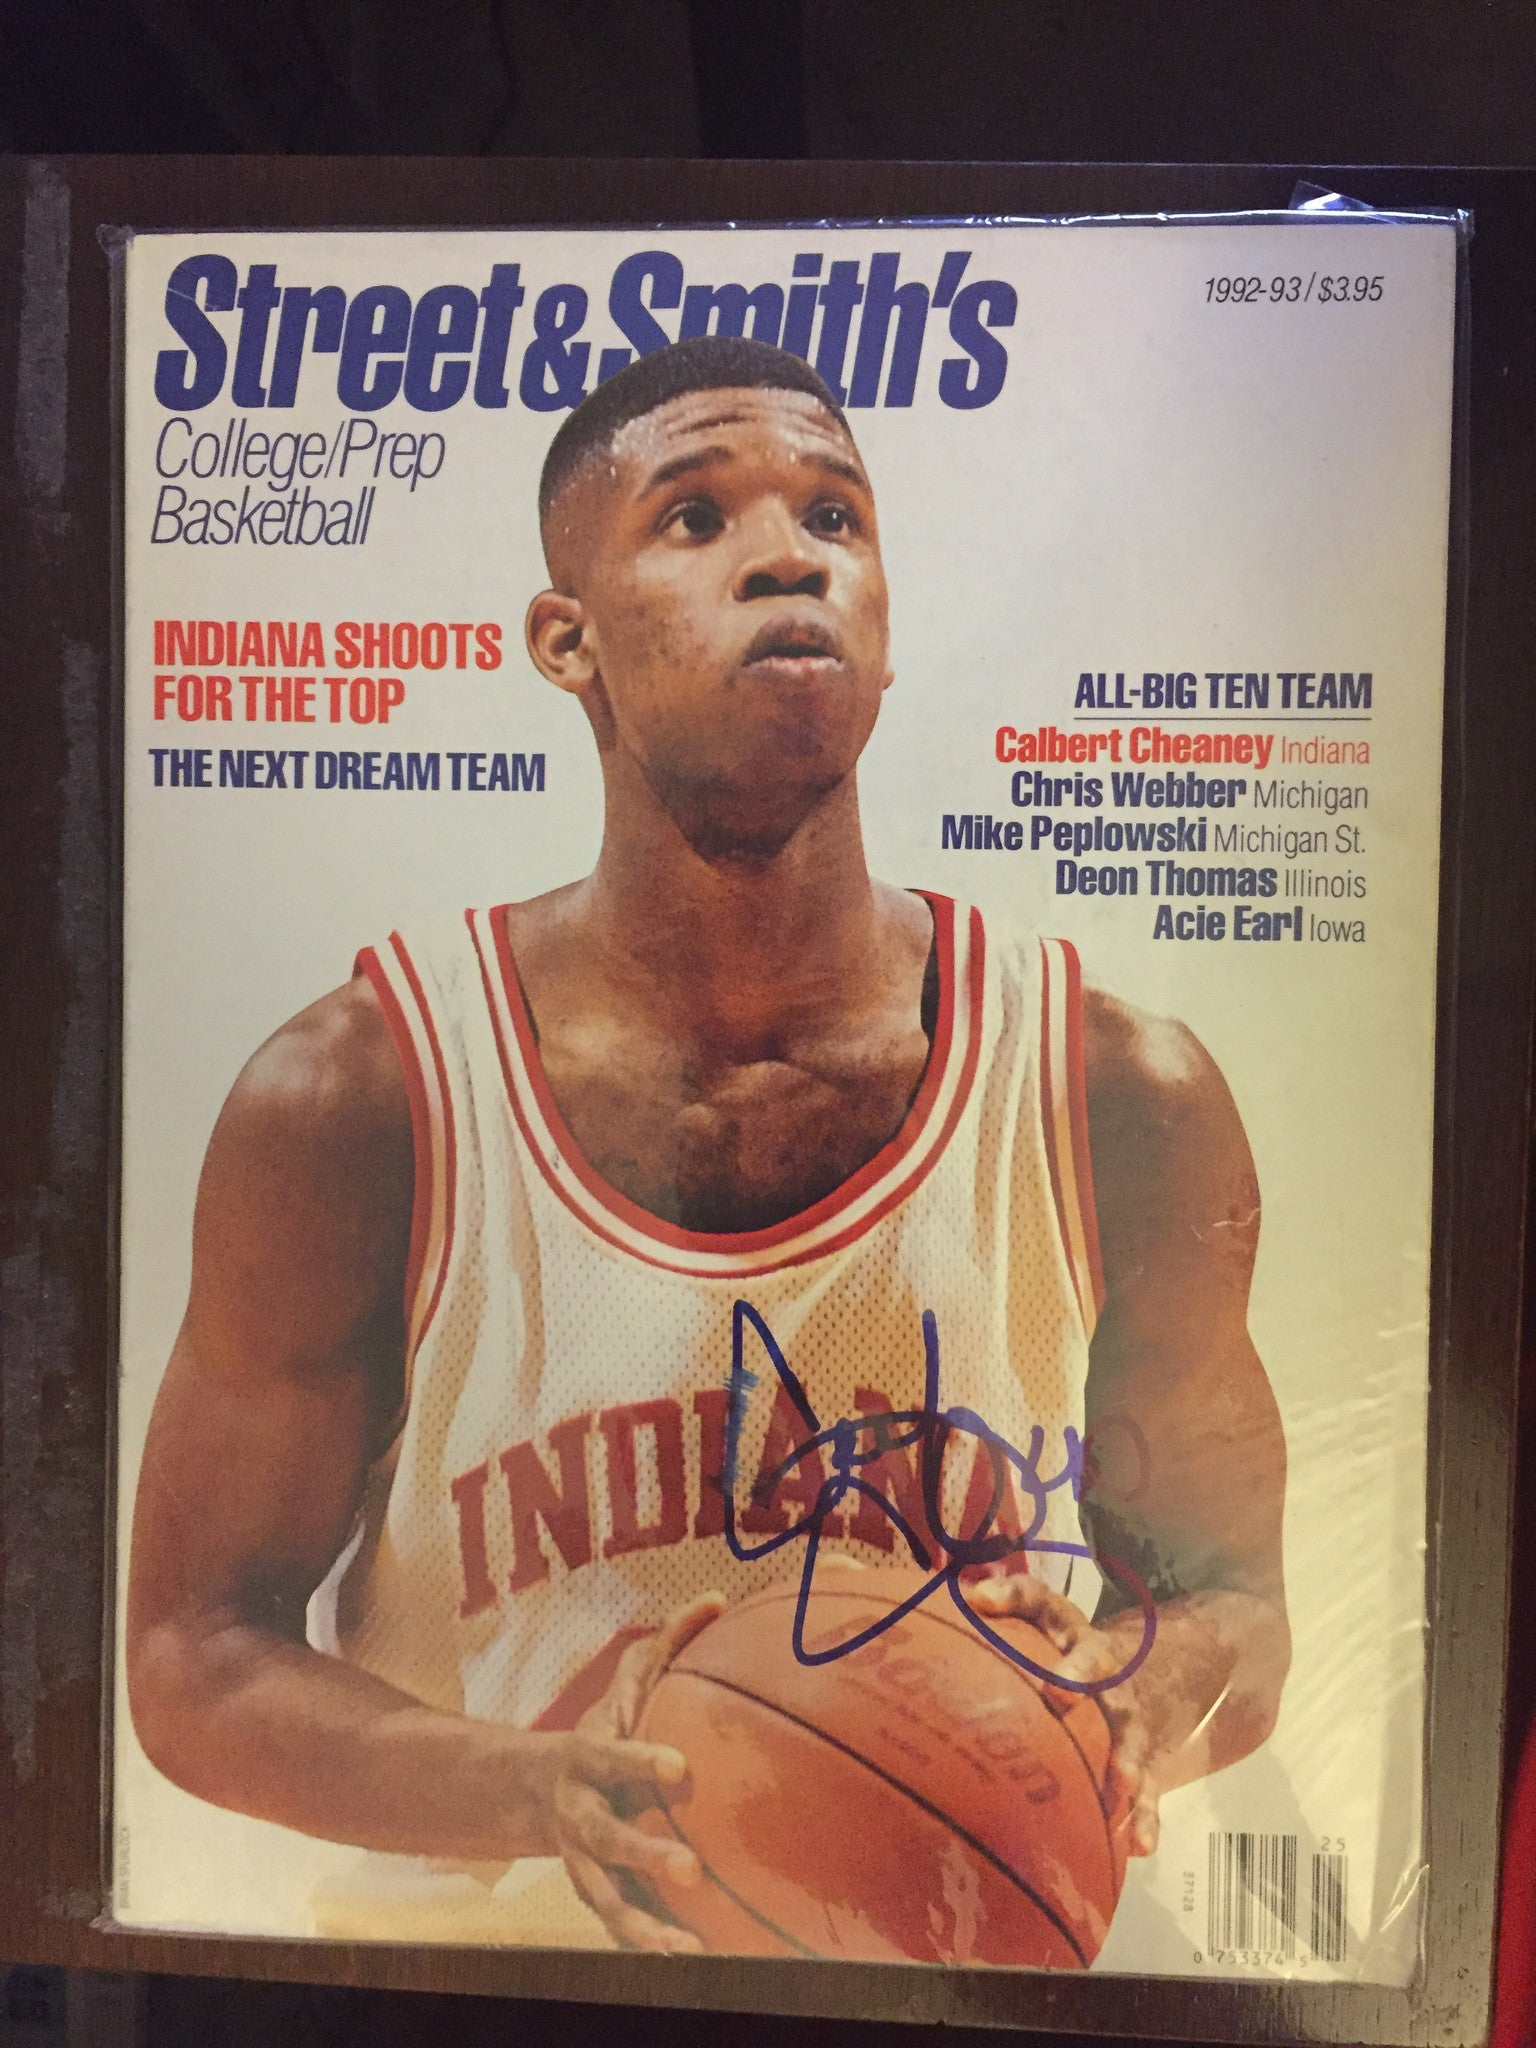 1992-93 Calbert Cheaney Autographed Street & Smith Basketball Preview, Indiana University - Vintage Indy Sports